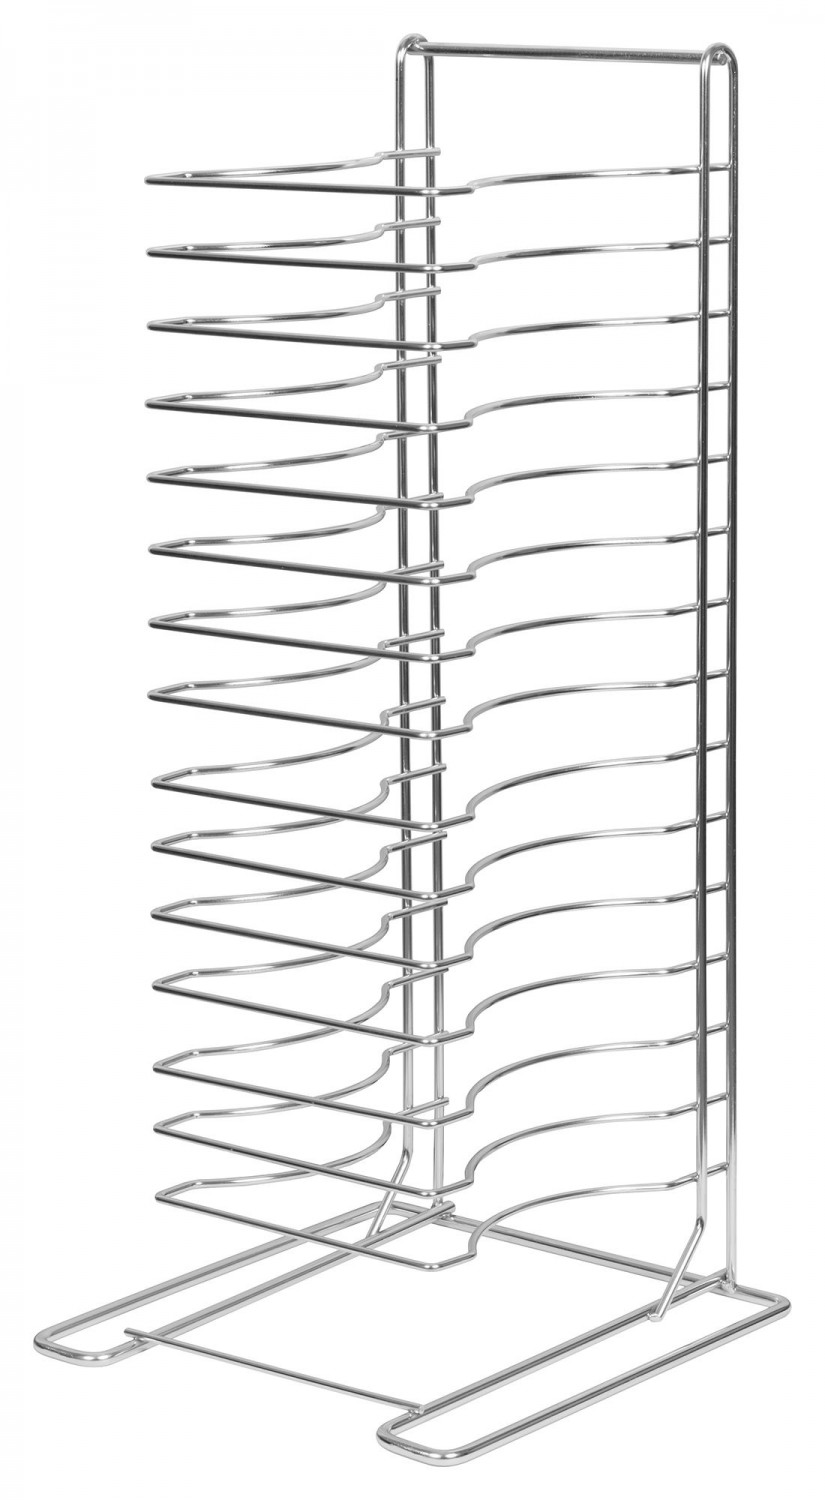 Winco APZT-1015 15-Slot Pizza Tray Rack